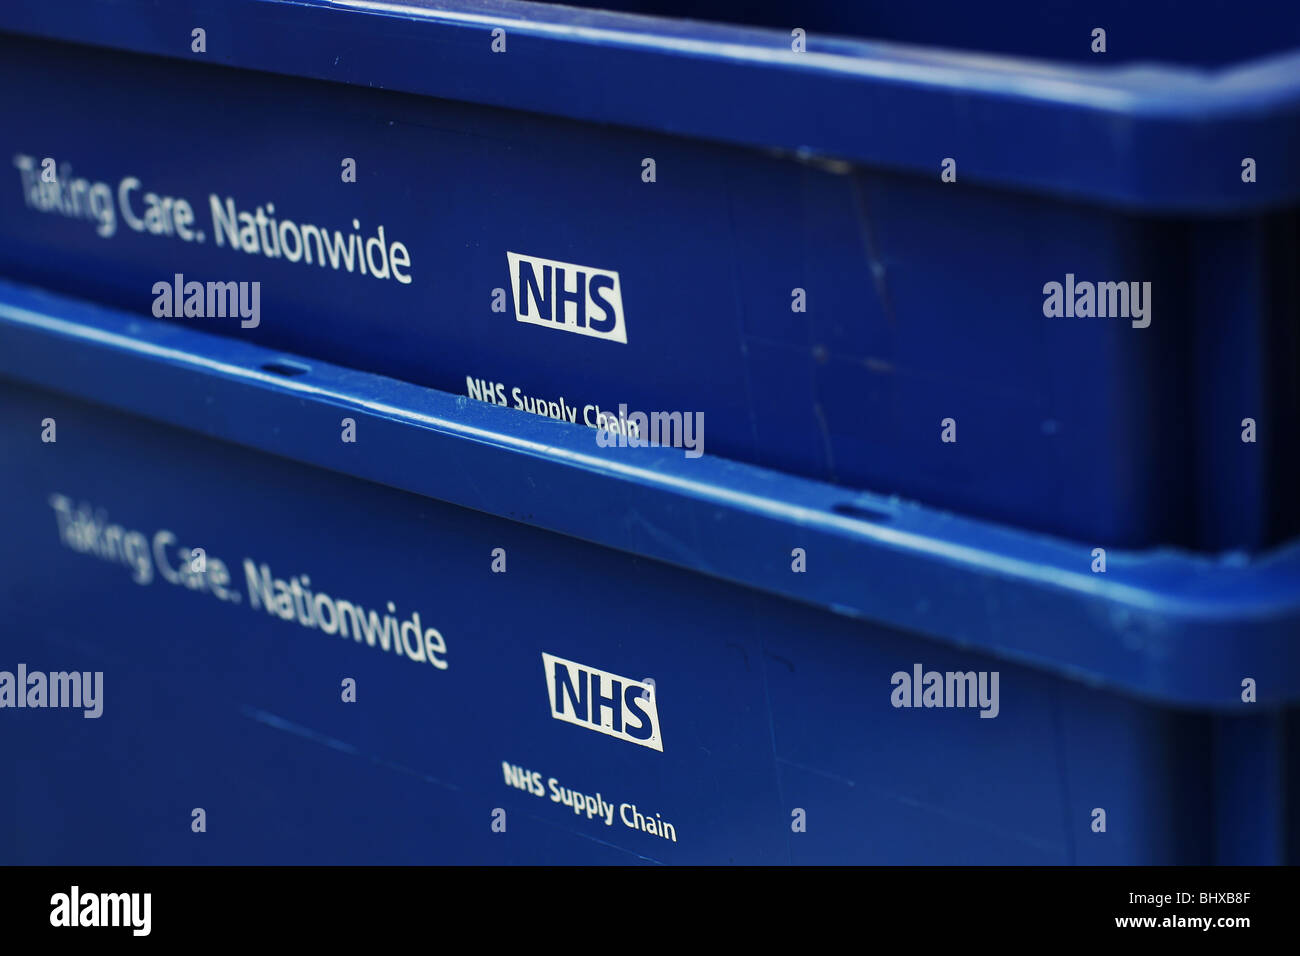 NHS supply chain containers - Stock Image